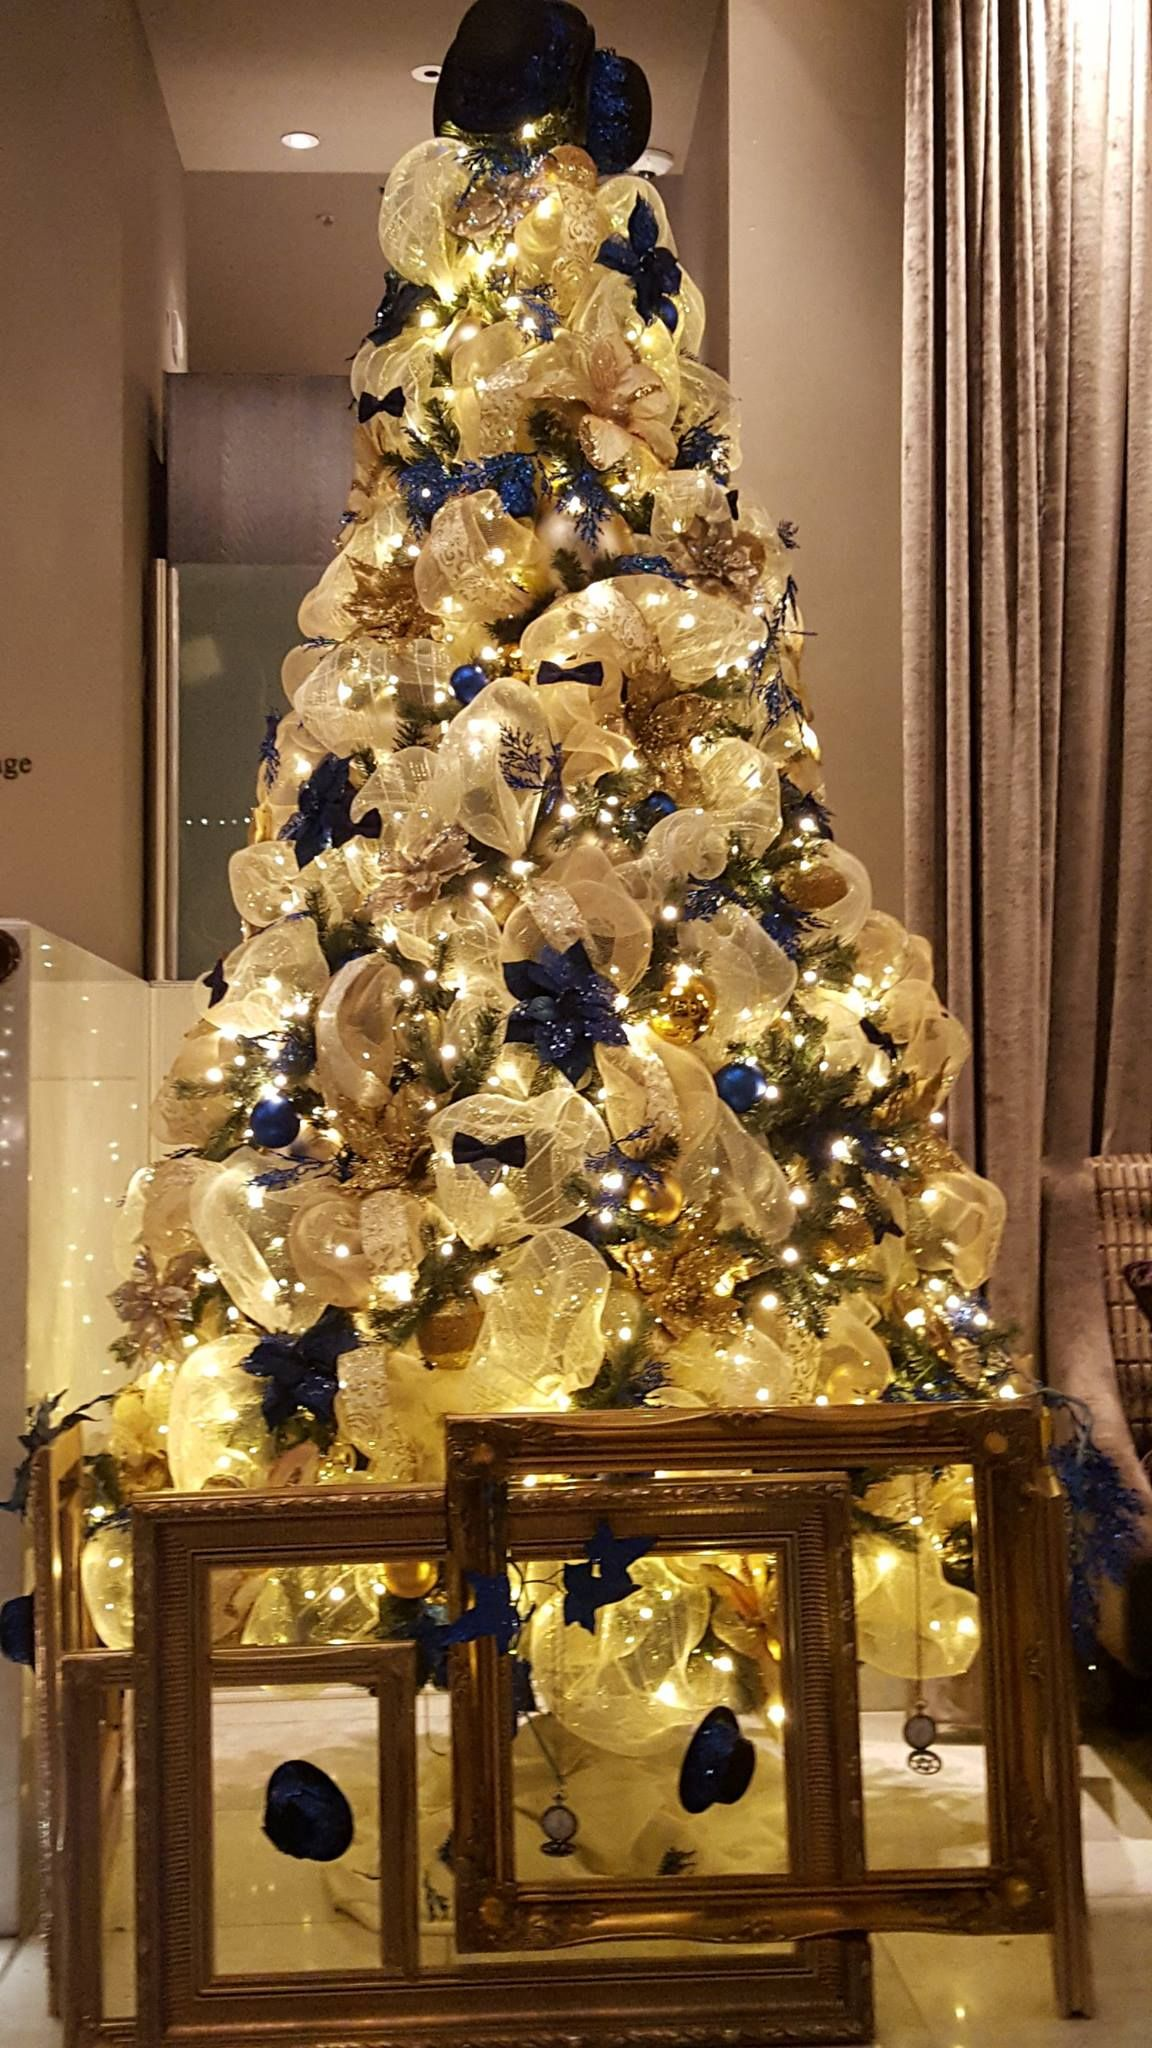 Christmas Tree Hire Luxury Christmas Tree Designs London Uk Gold Christmas Decorations Luxury Christmas Tree Gold Christmas